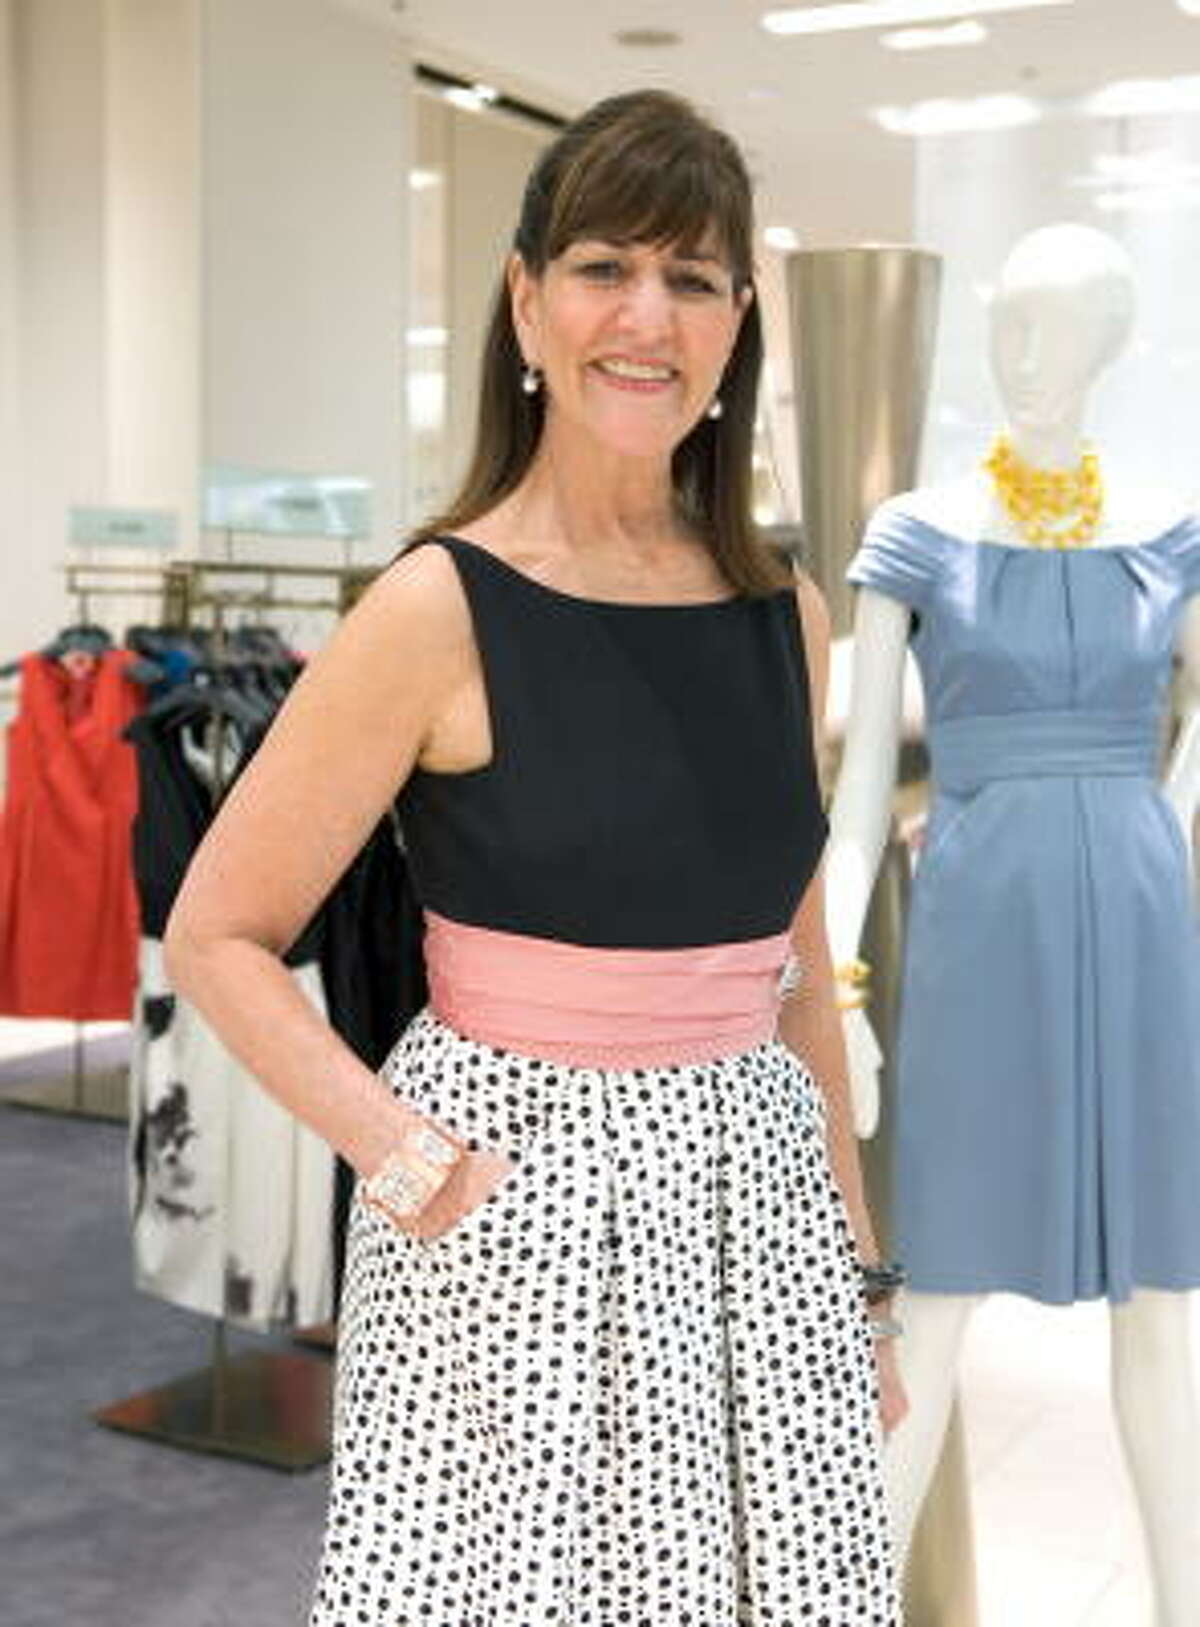 Fashion designer Kay Unger in one of her own creations. Her Phoebe Couture line is a favorite among Gossip Girl and Ugly Betty castmates.